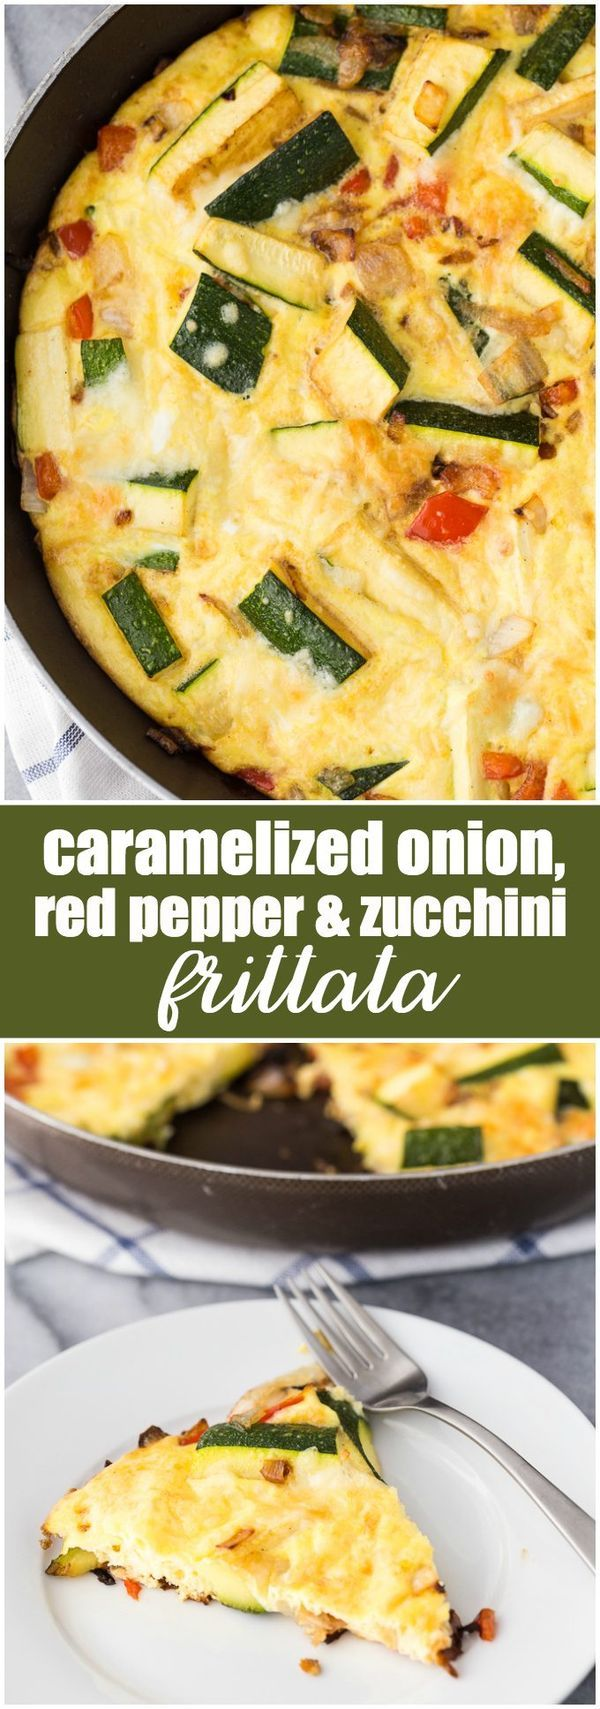 Caramelized Onion, Red Pepper & Zucchini Frittata - A delicious and easy low carb breakfast!